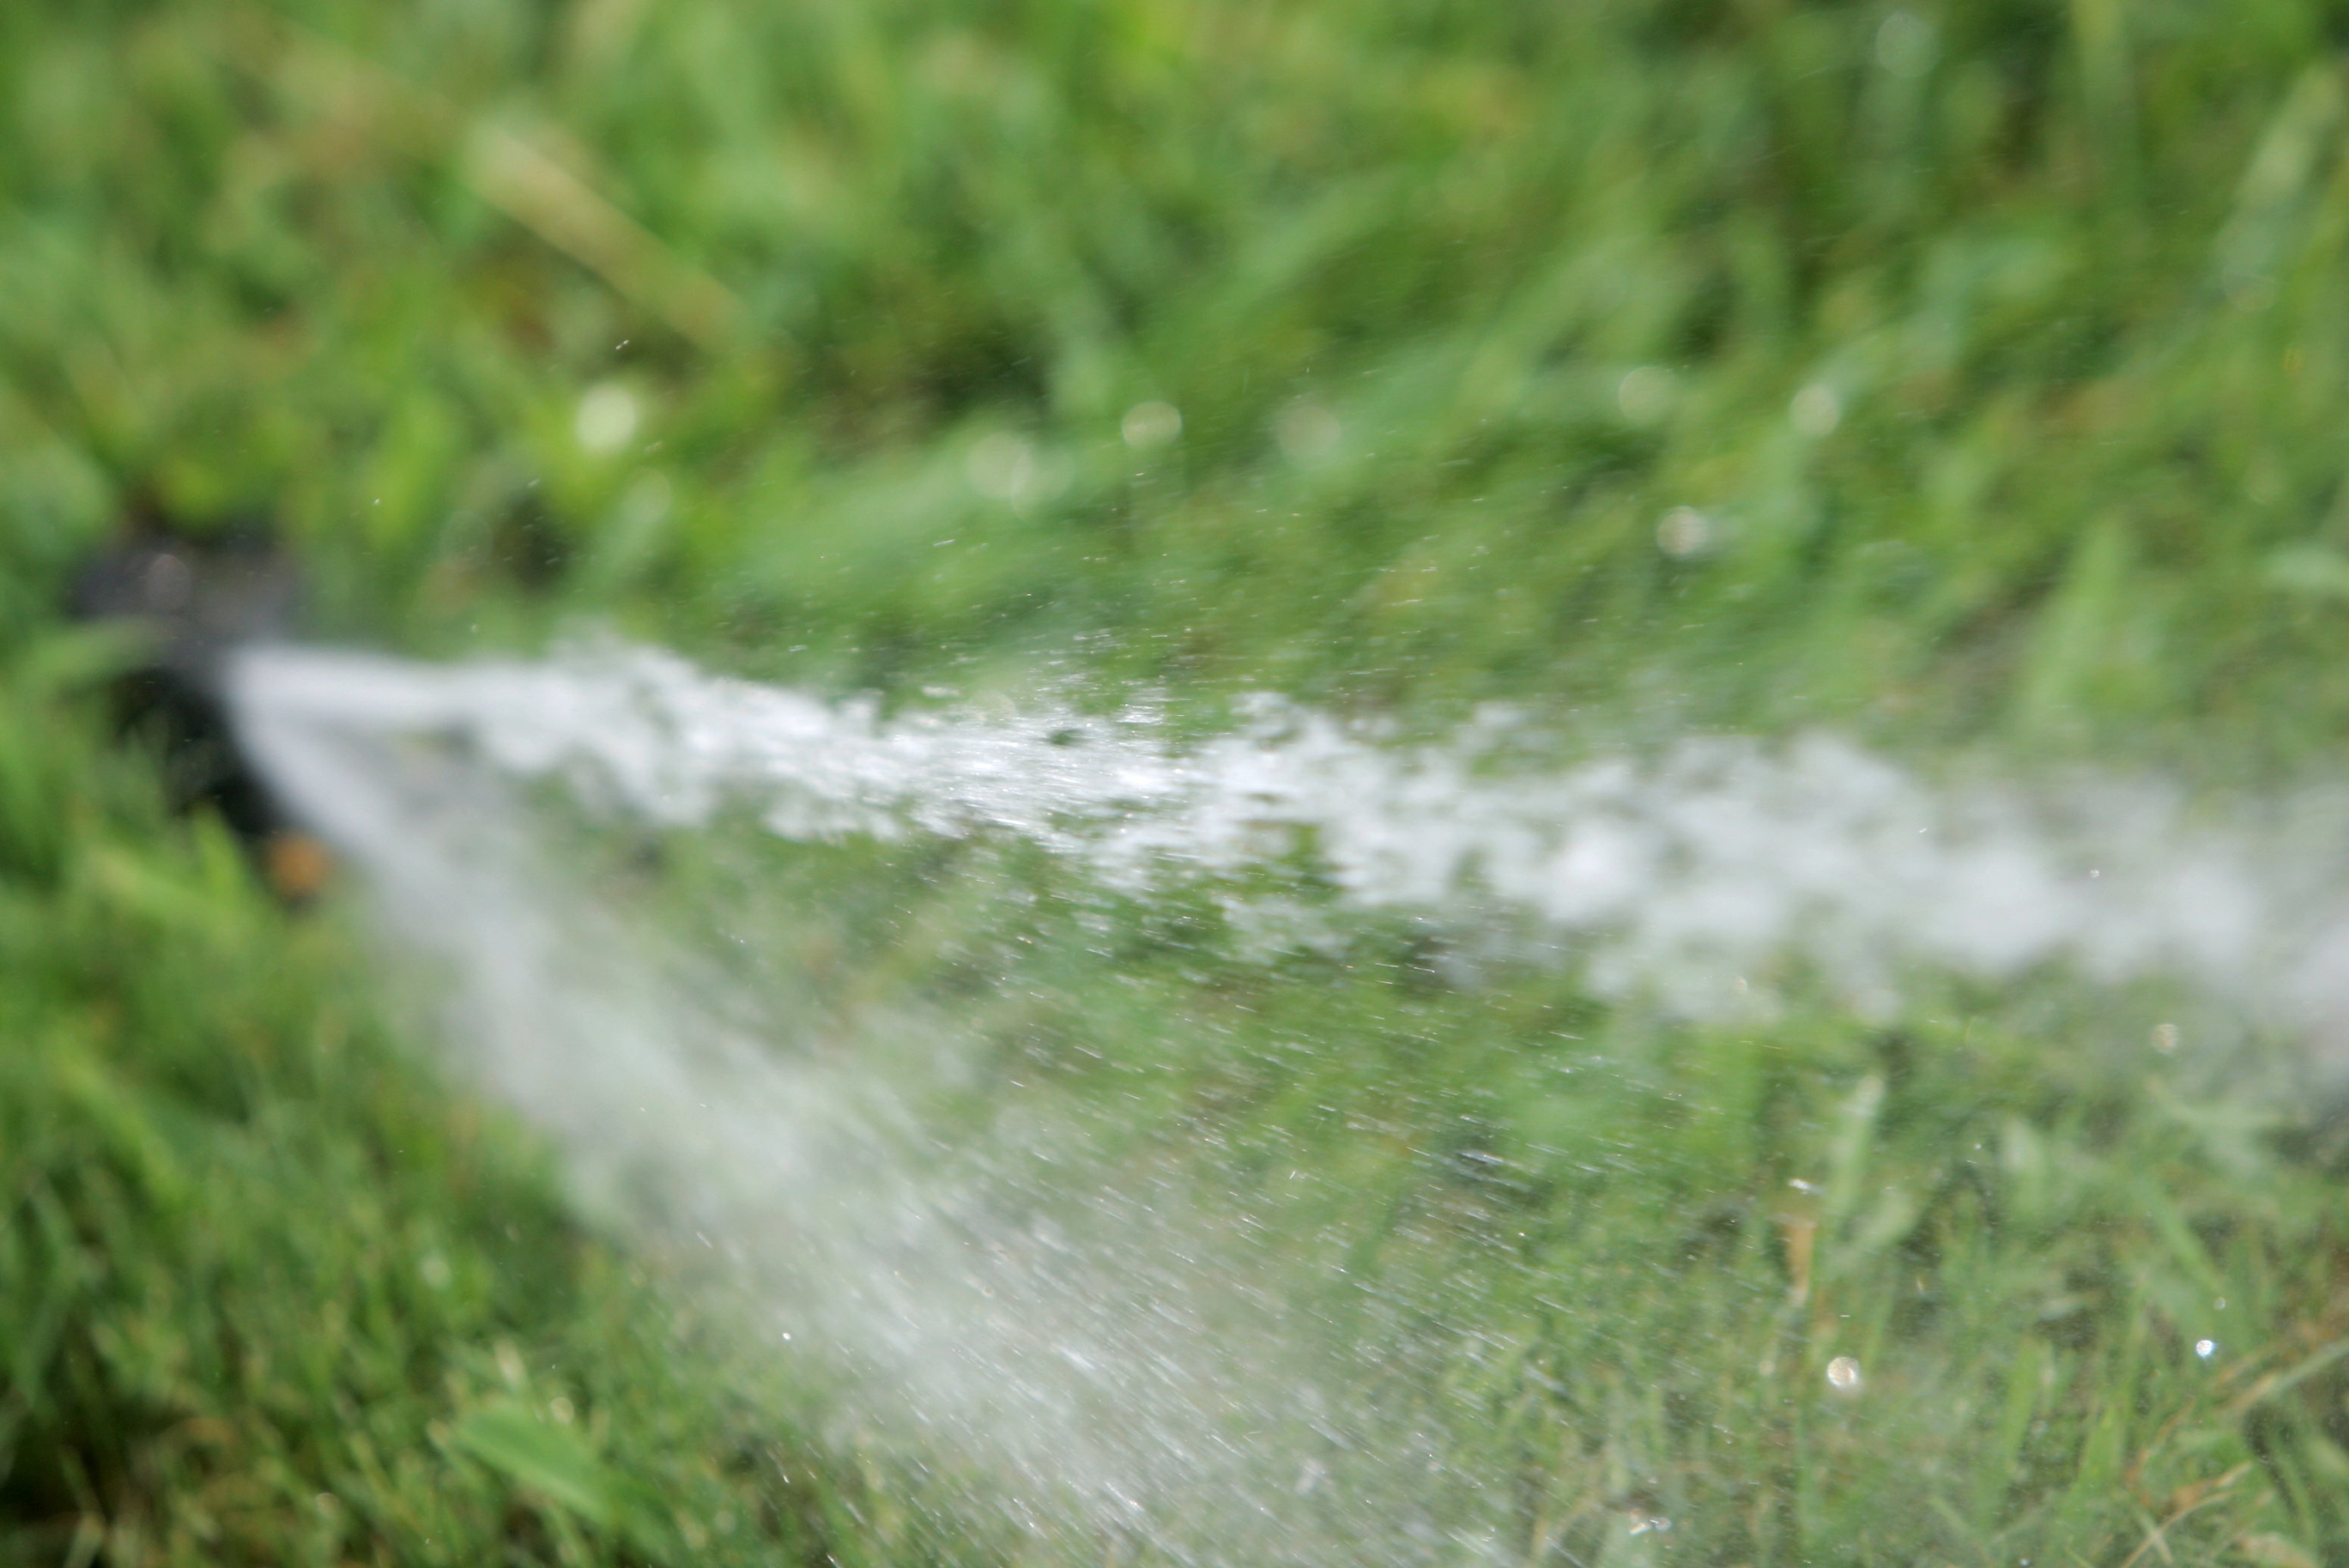 July is Smart Irrigation Month. It's a good time to check home irrigation systems and develop more efficient irrigation habits.